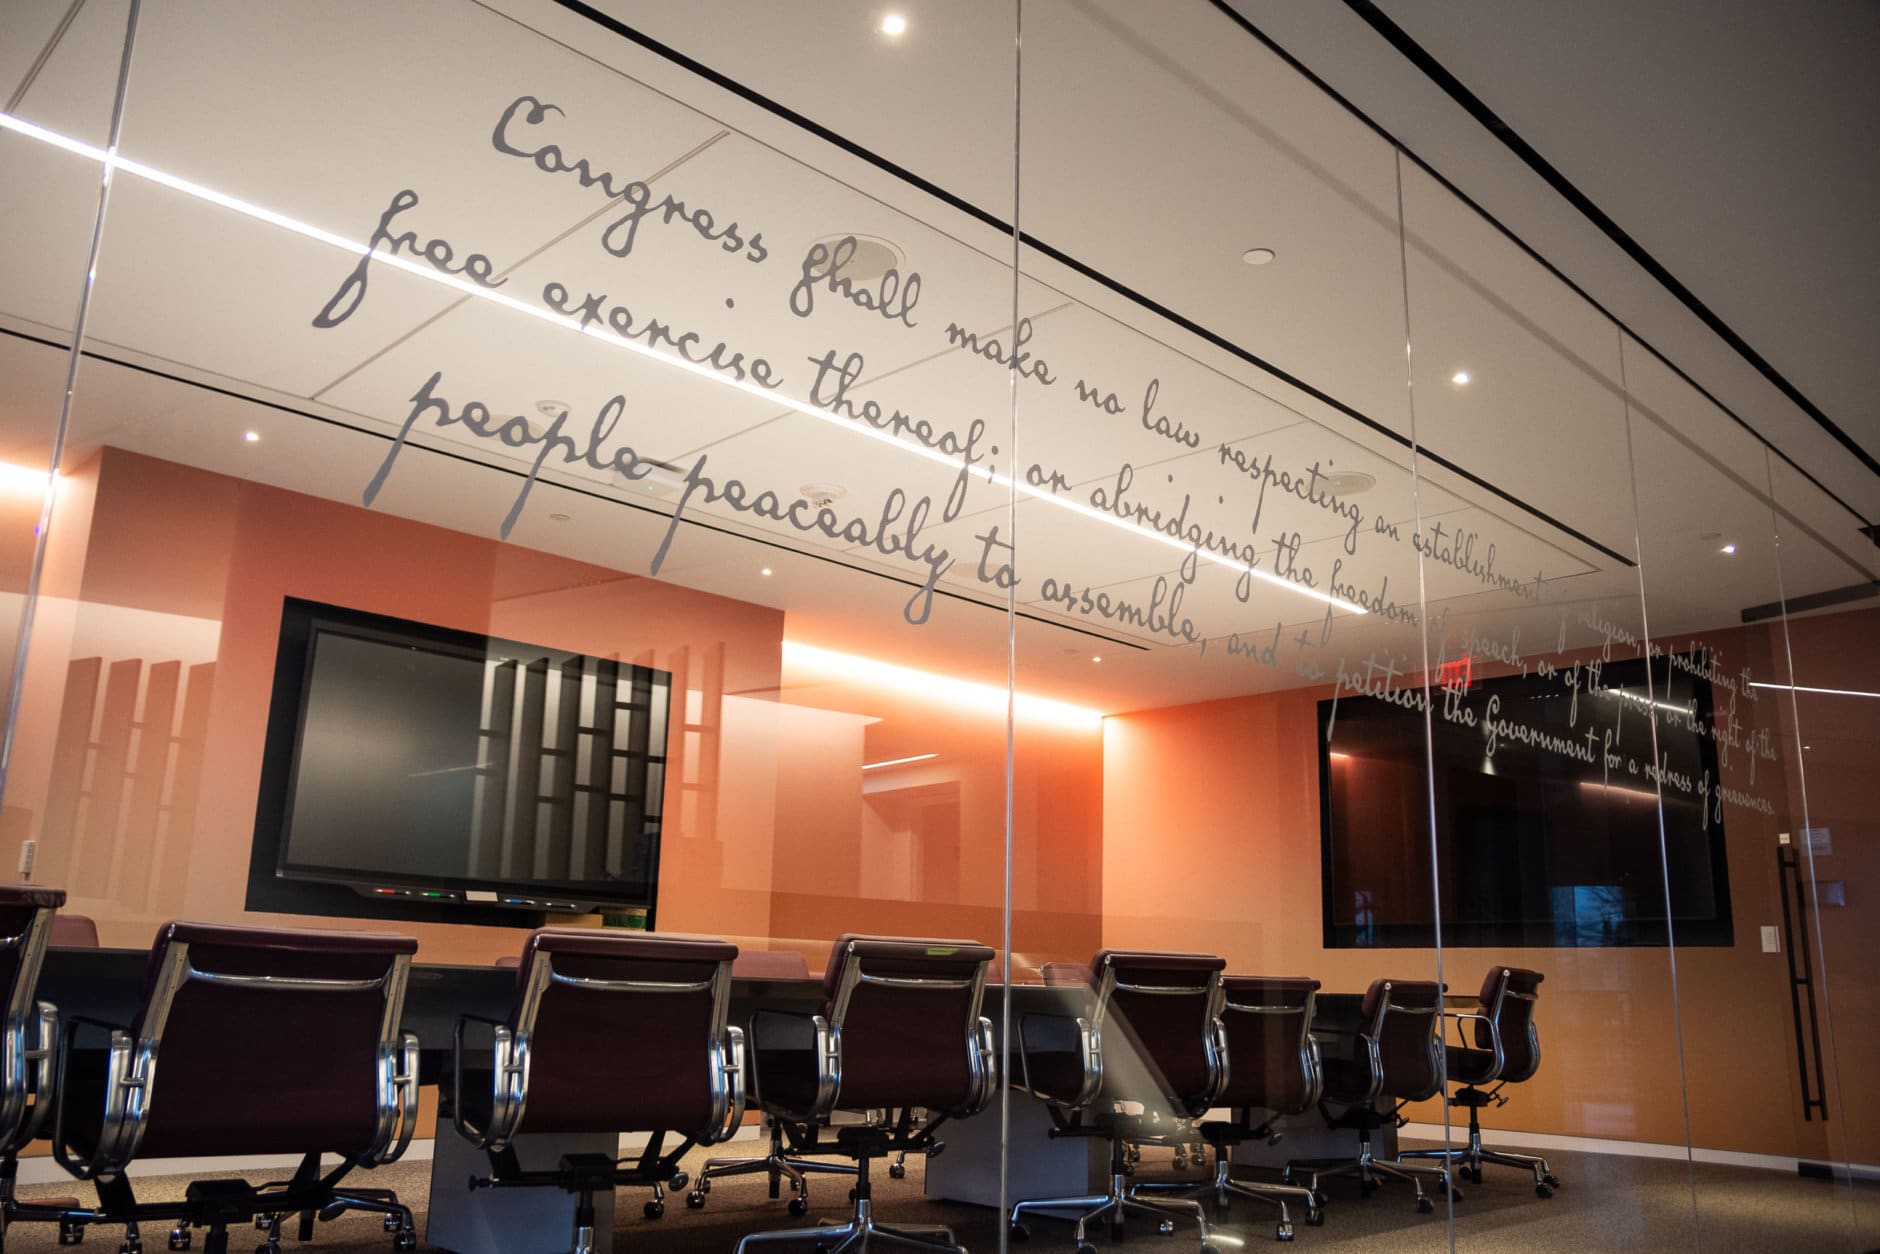 Like the Idaho Avenue building, the First Amendment will feature prominently in the new office. Pictured, the 45 words which ensrine five freedoms are stenciled on glass panels facing the reception area. (WTOP/Alejandro Alvarez)